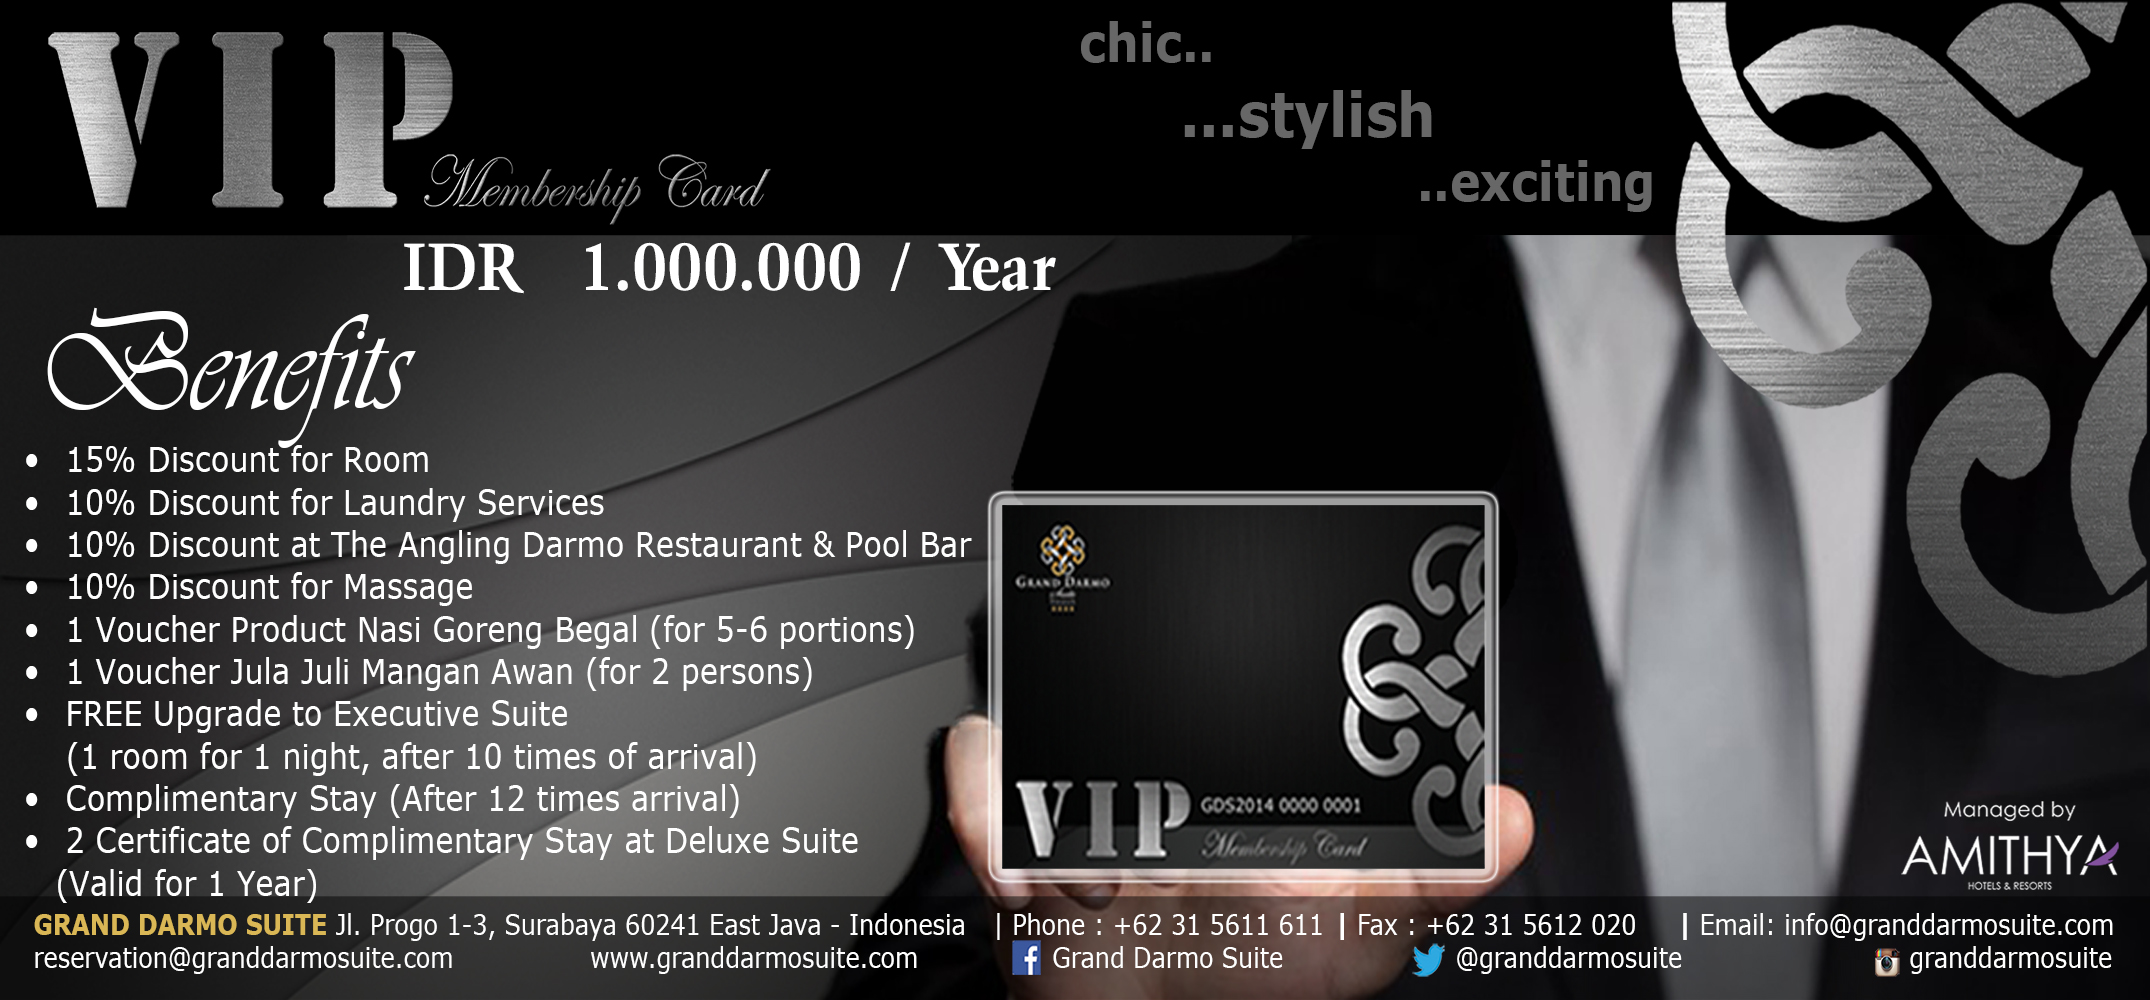 VIP Membership Card Promotion